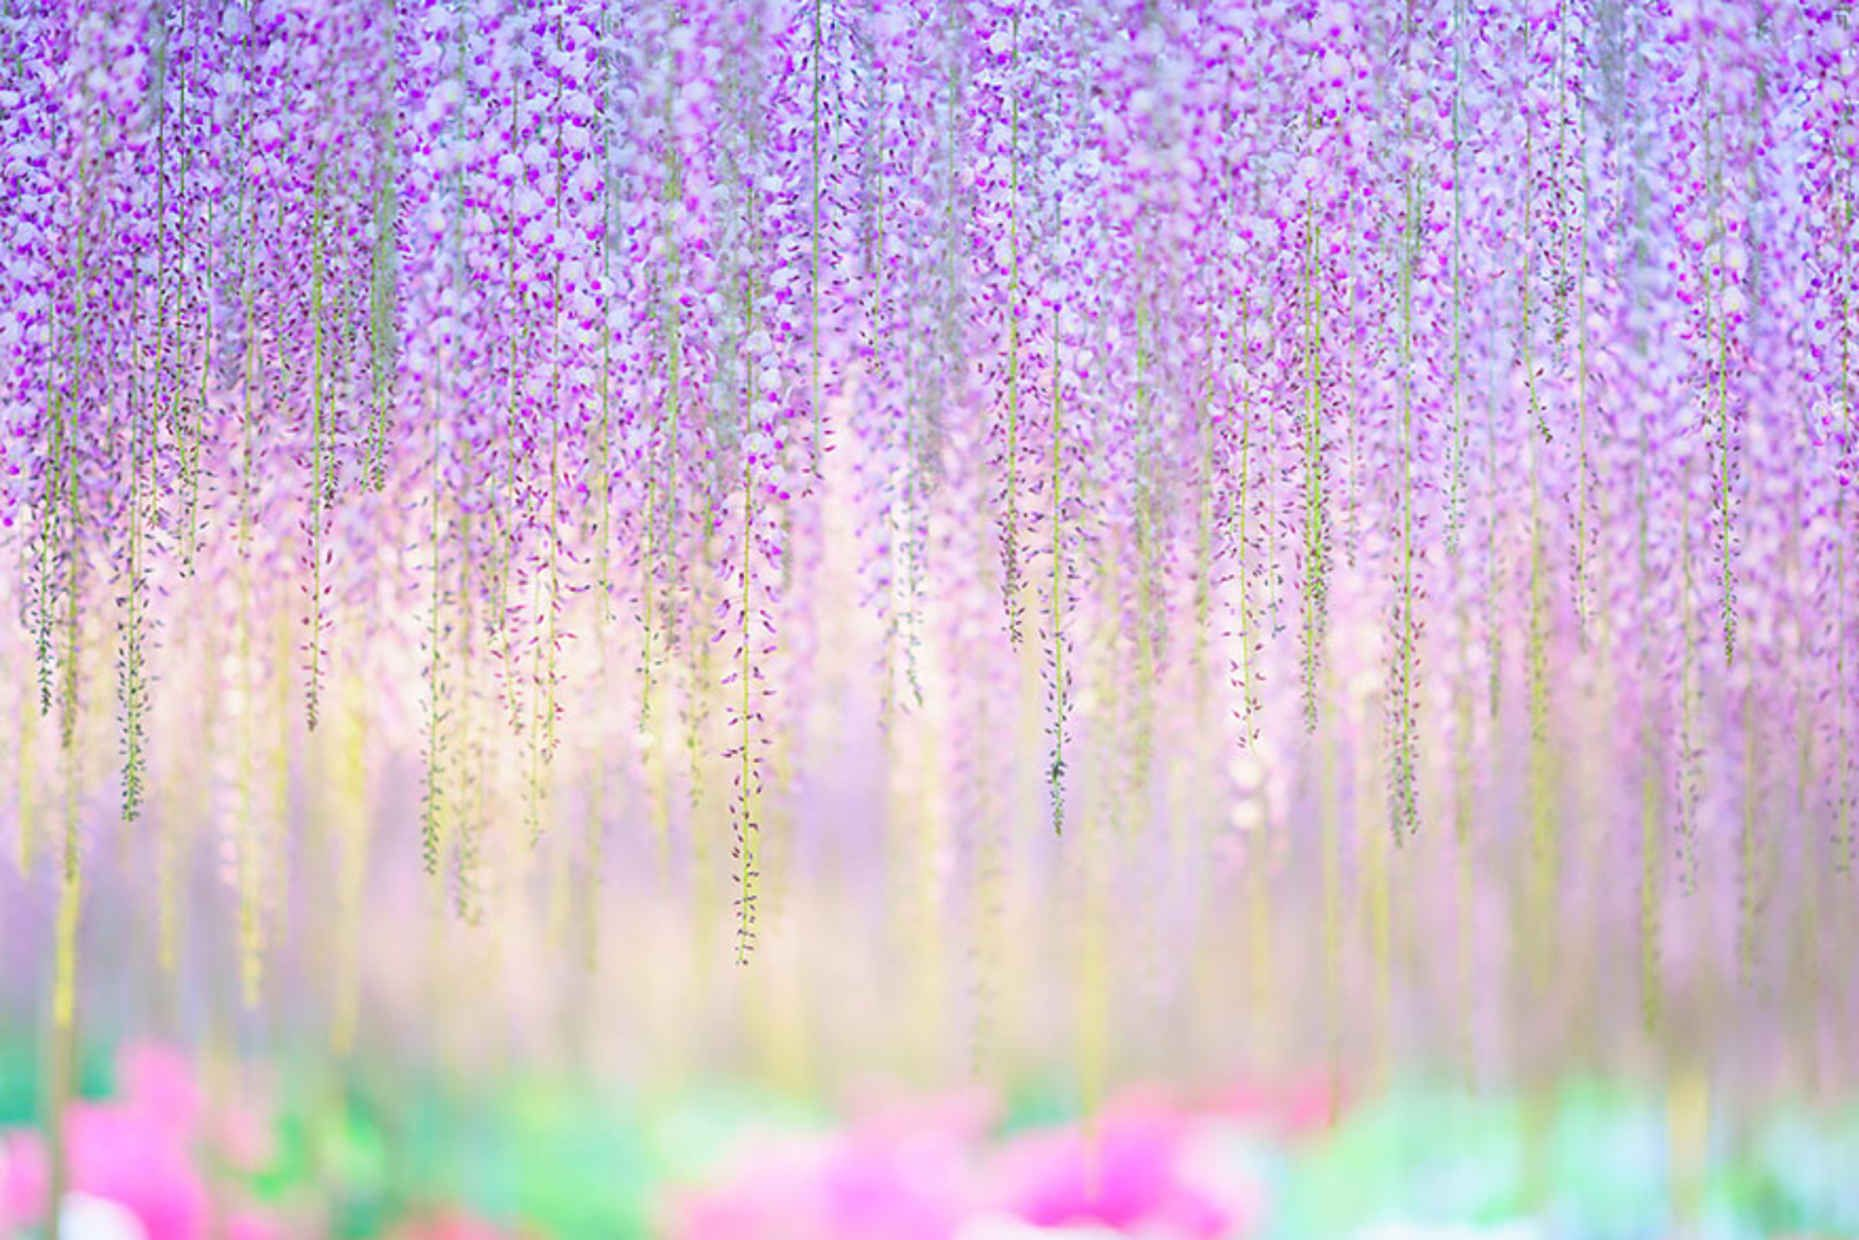 This Beautiful Wisteria Plant In Japan Is Years Old Wisteria - Beautiful wisteria plant japan 144 years old